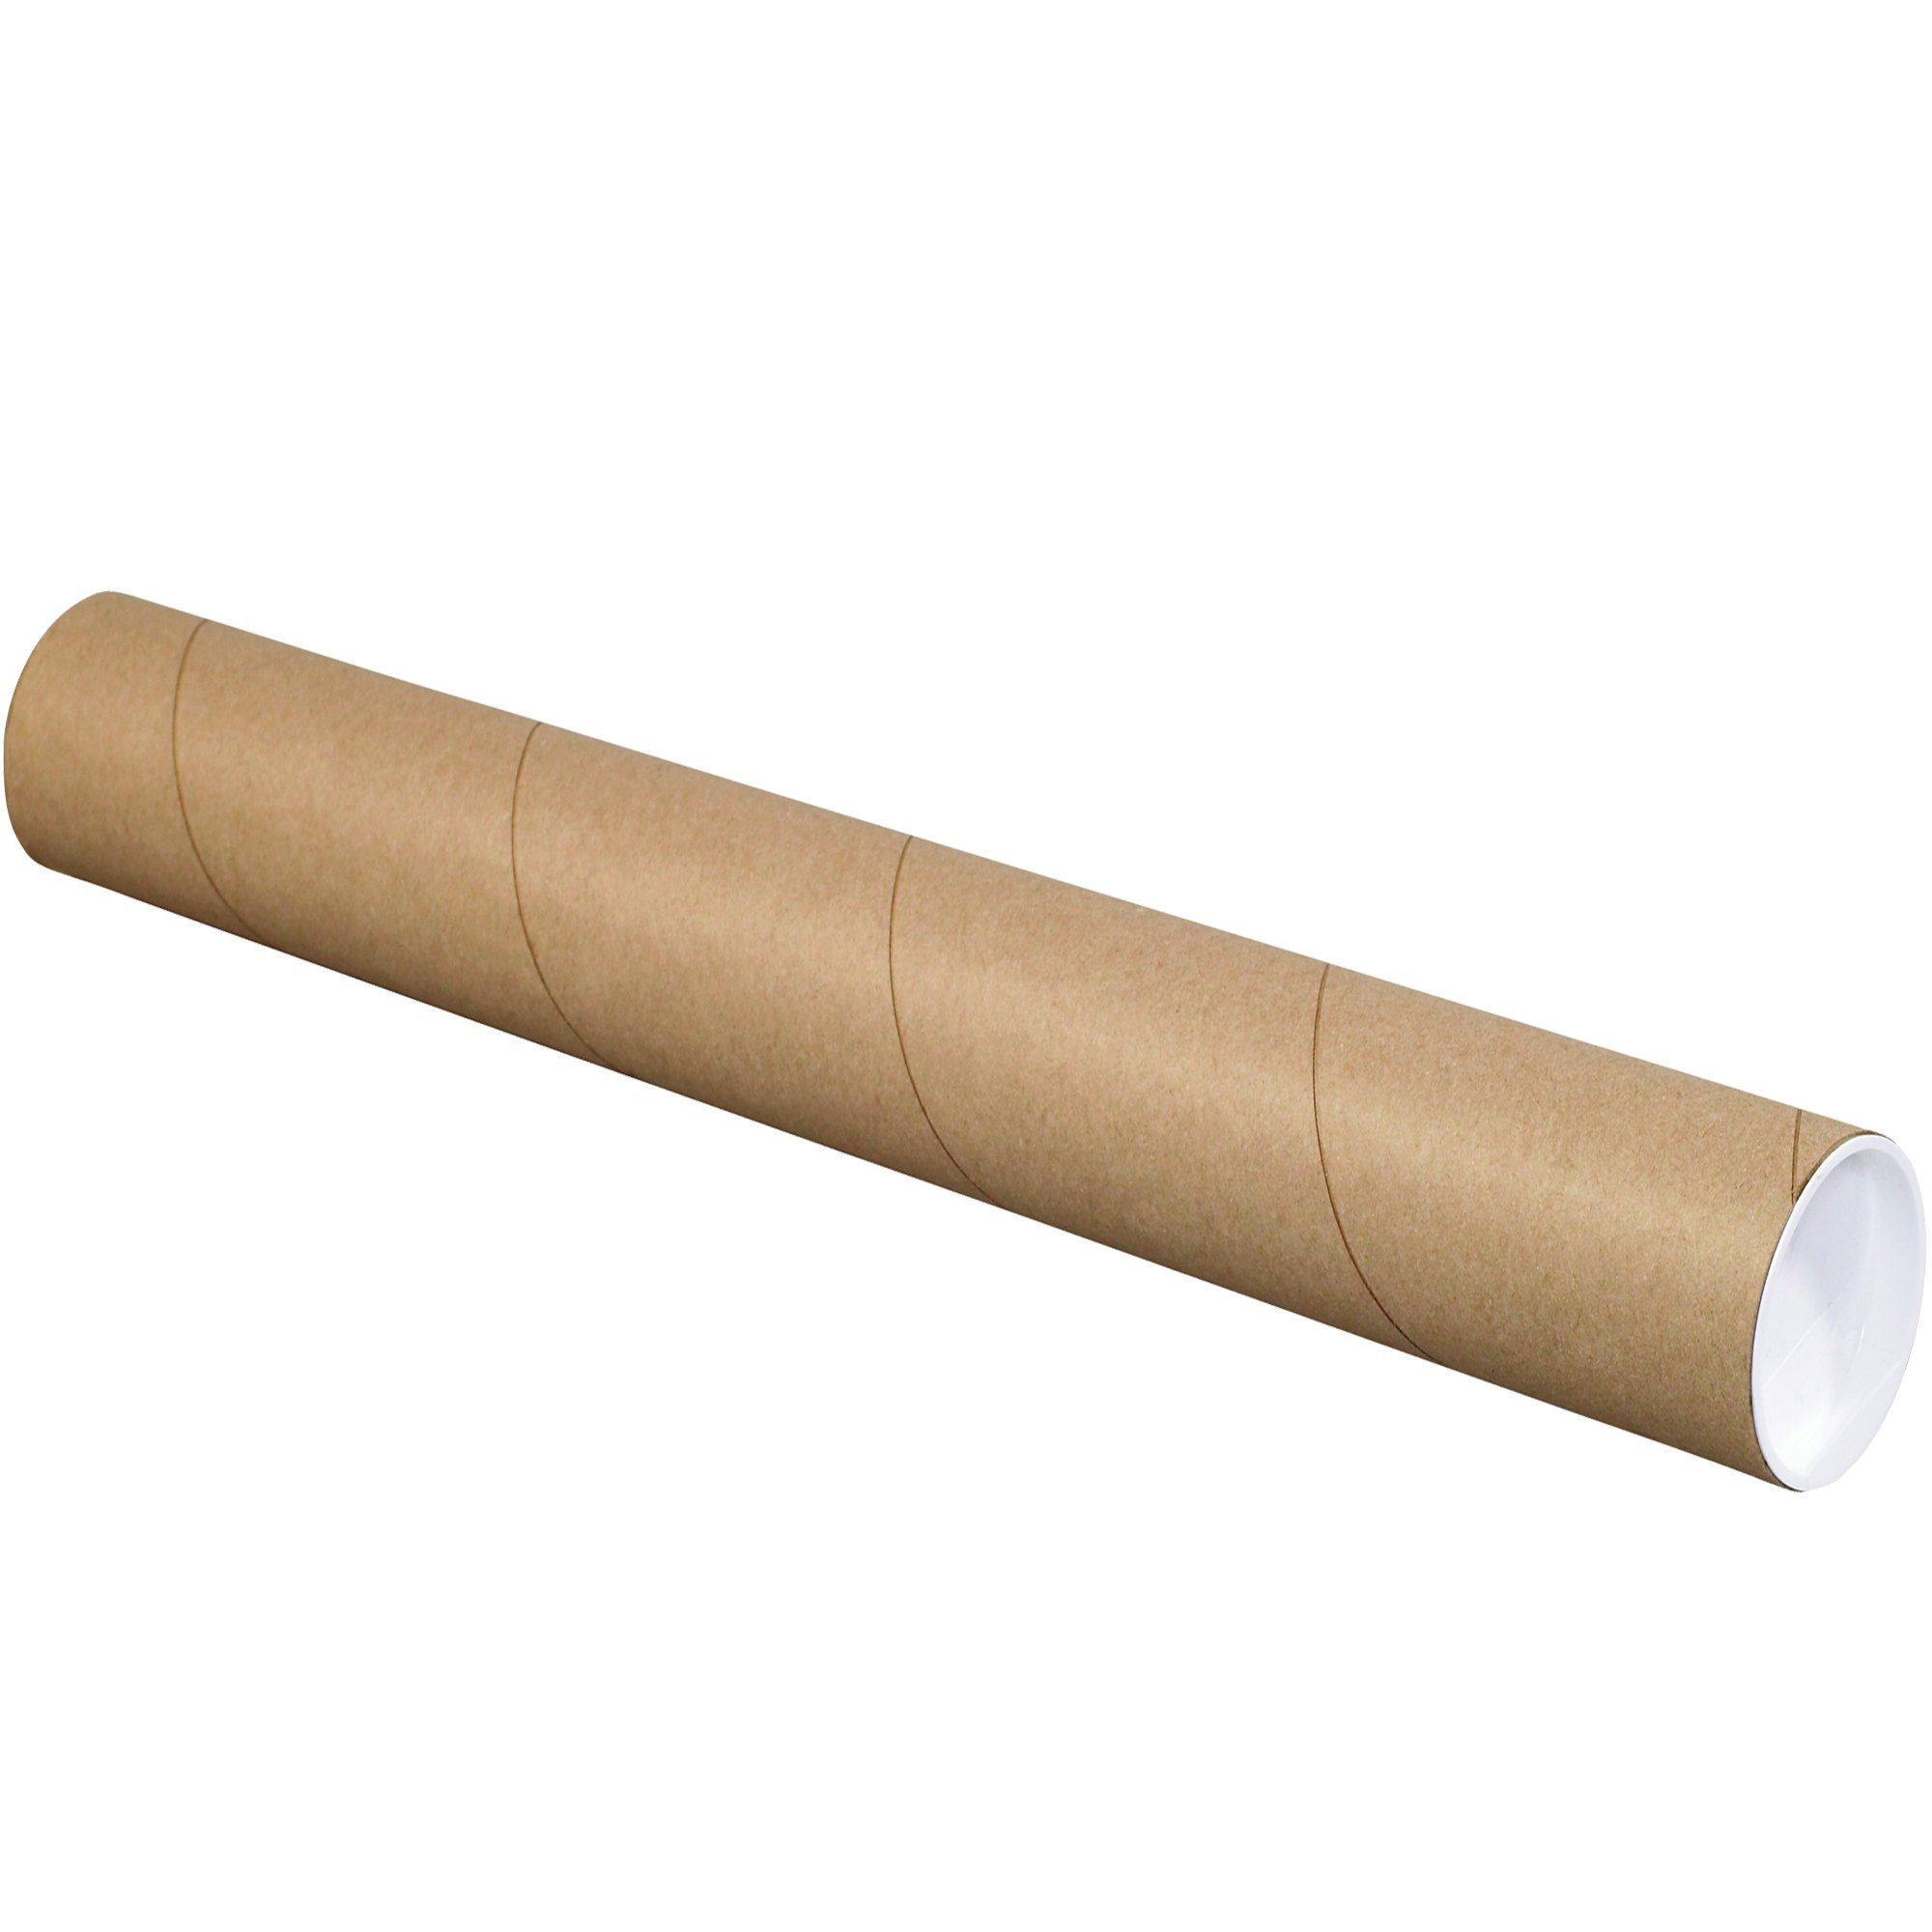 Ship Now Supply SNP3048K Mailing Tubes with Caps, 3'' x 48'', Kraft (Pack of 24)